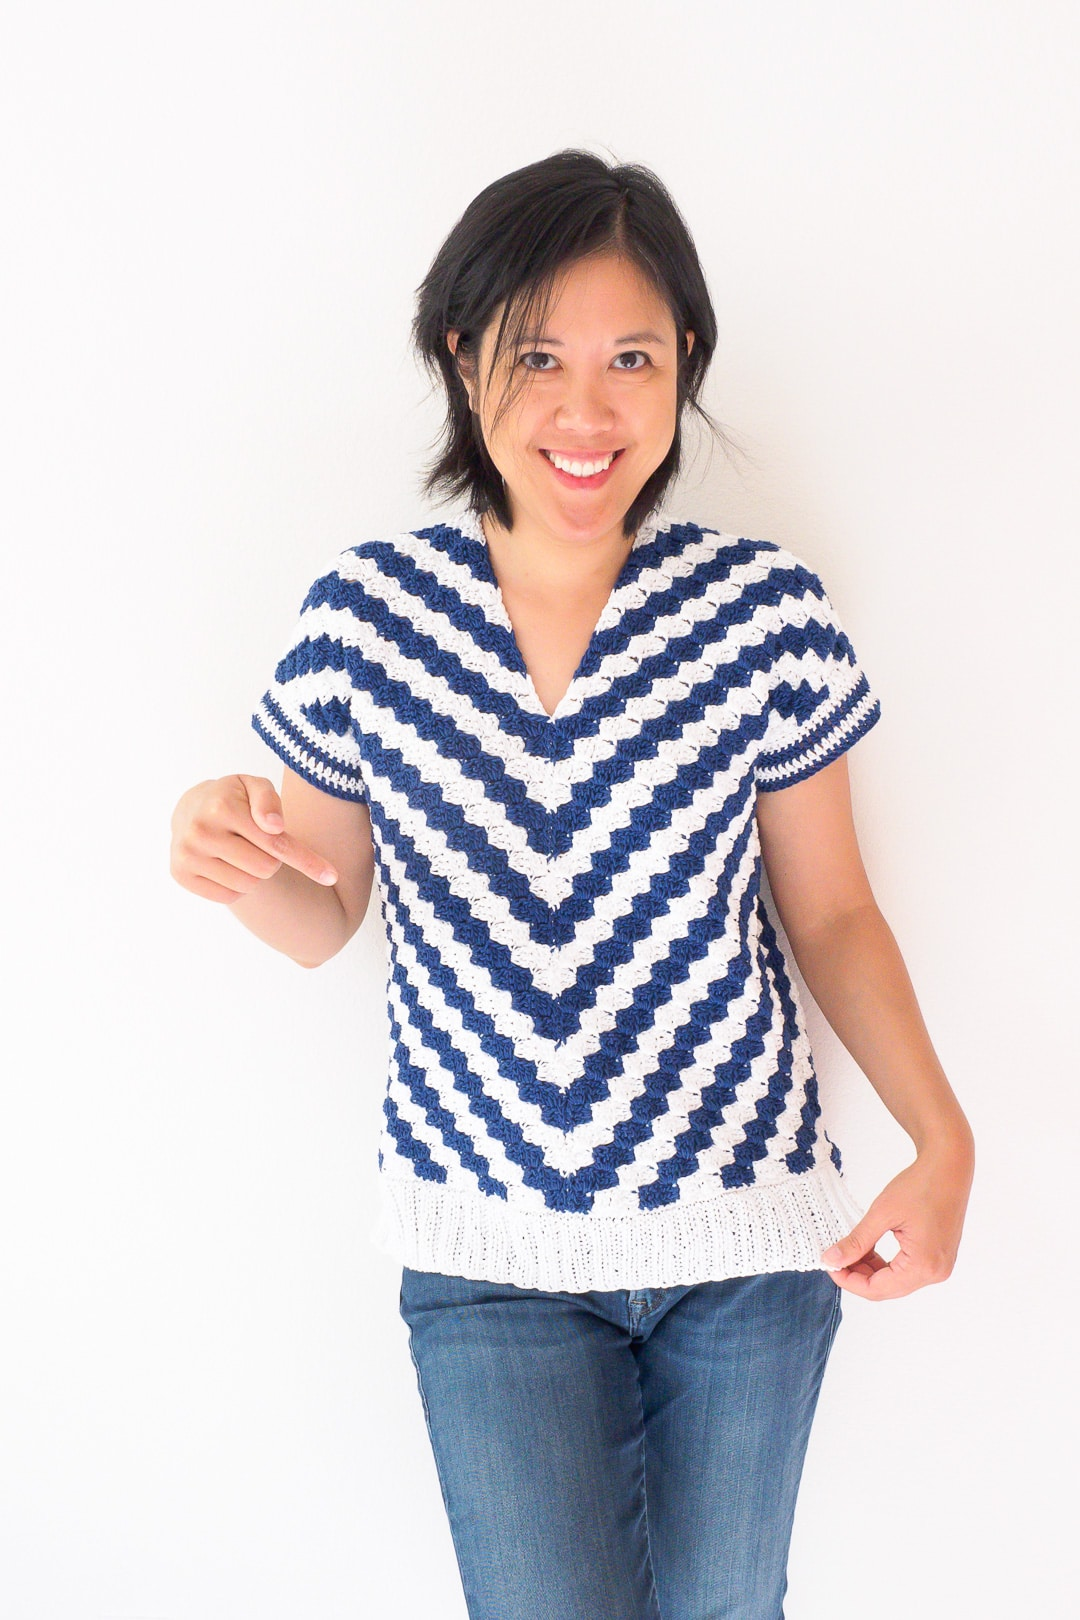 Diagonals for Days C2C Crochet Top